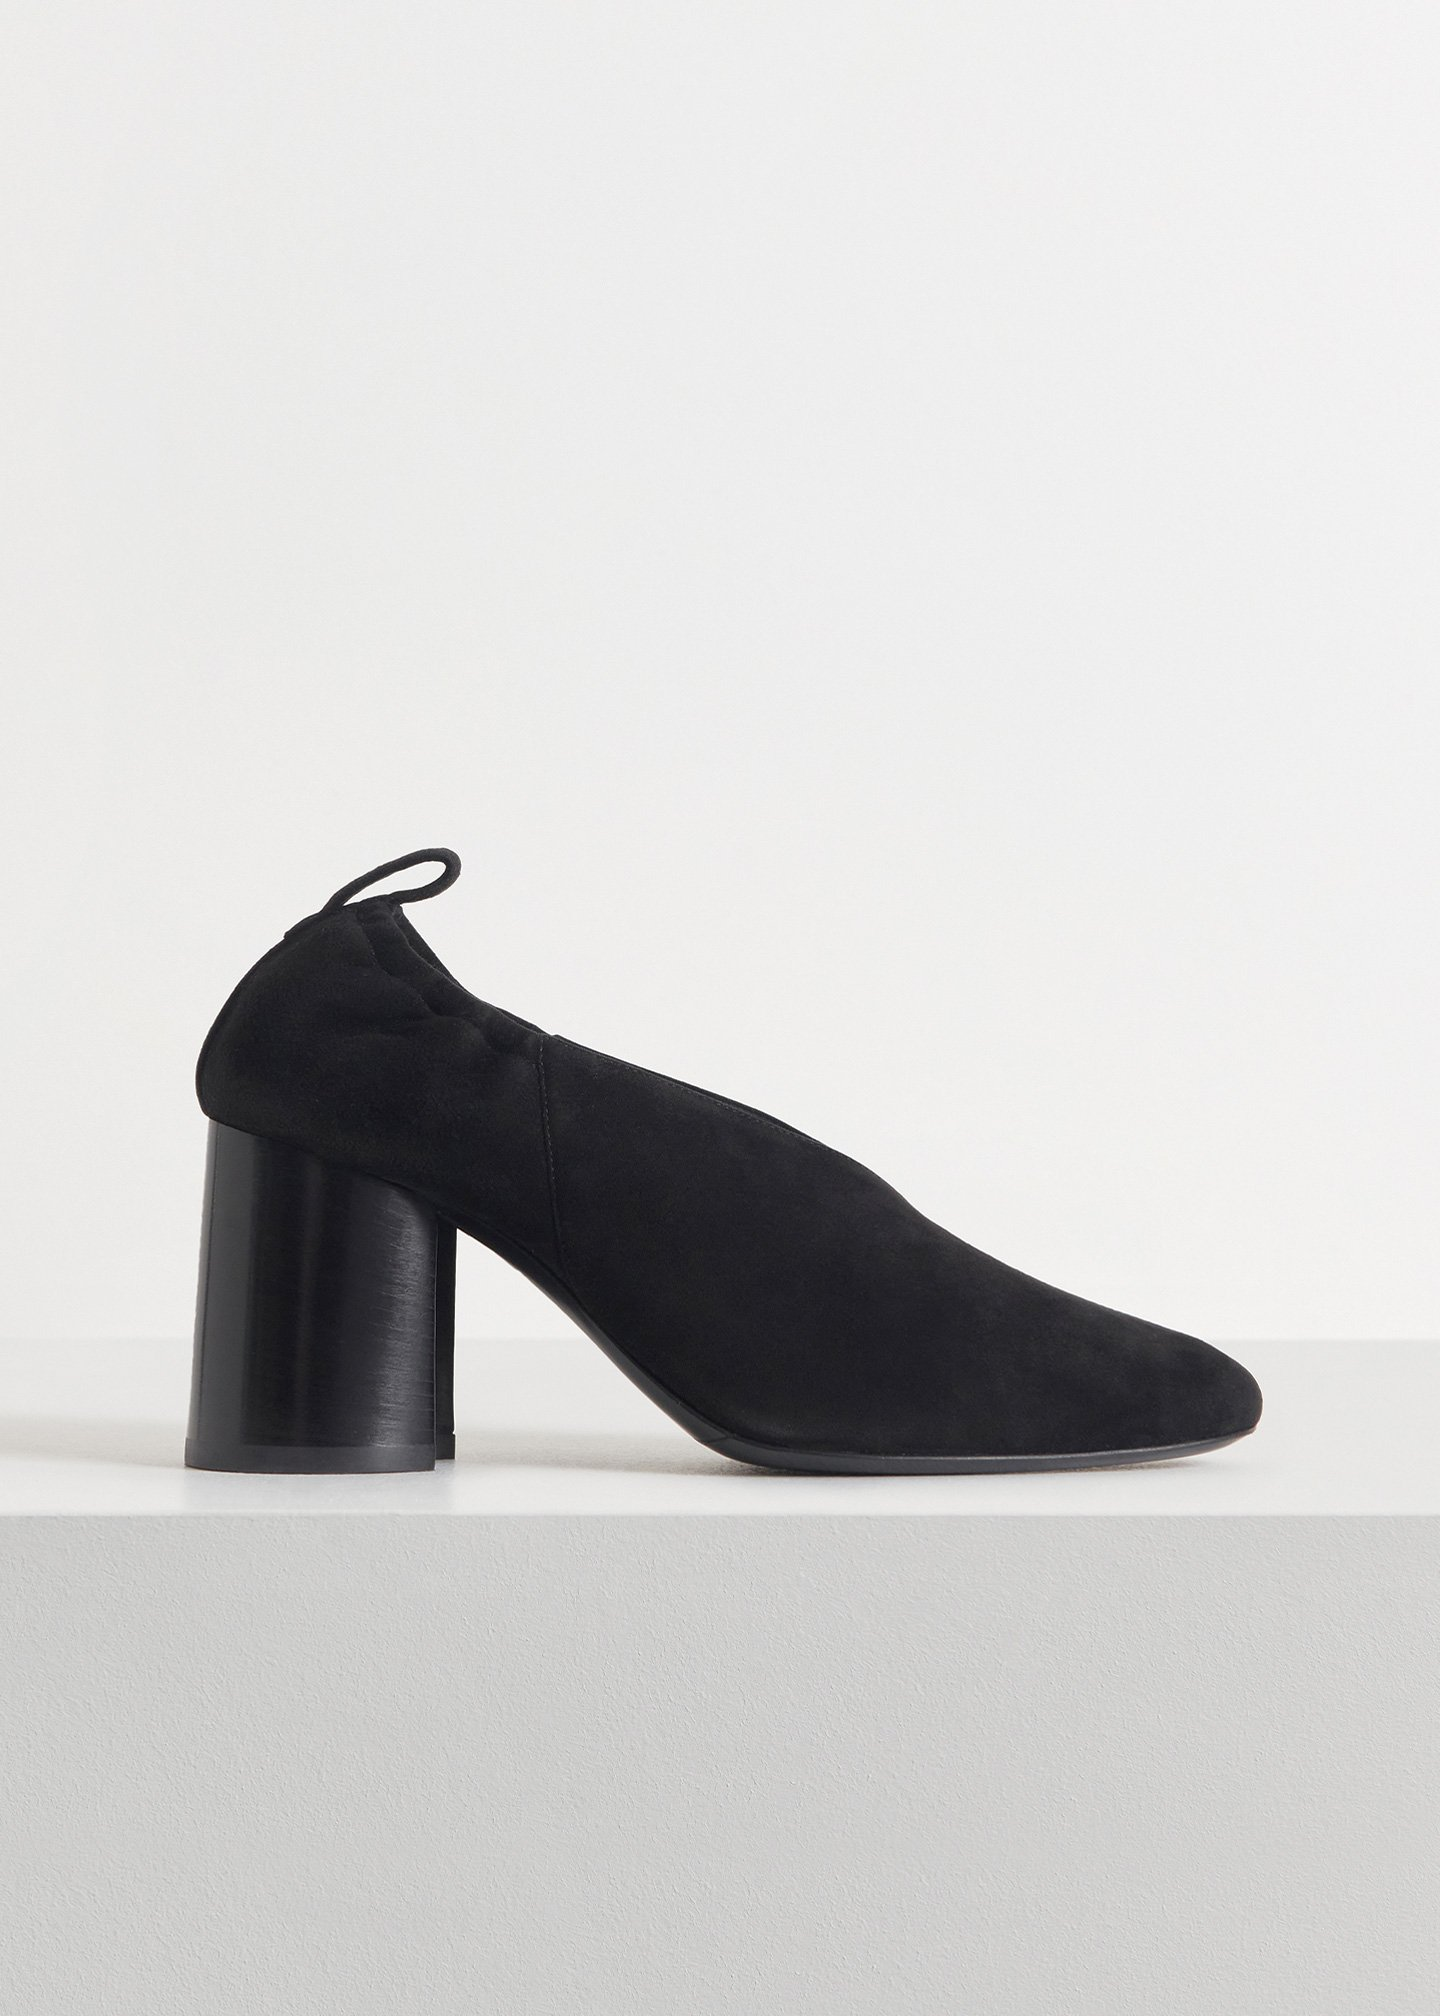 Slit Heel in Suede - Sand in Black by Co Collections